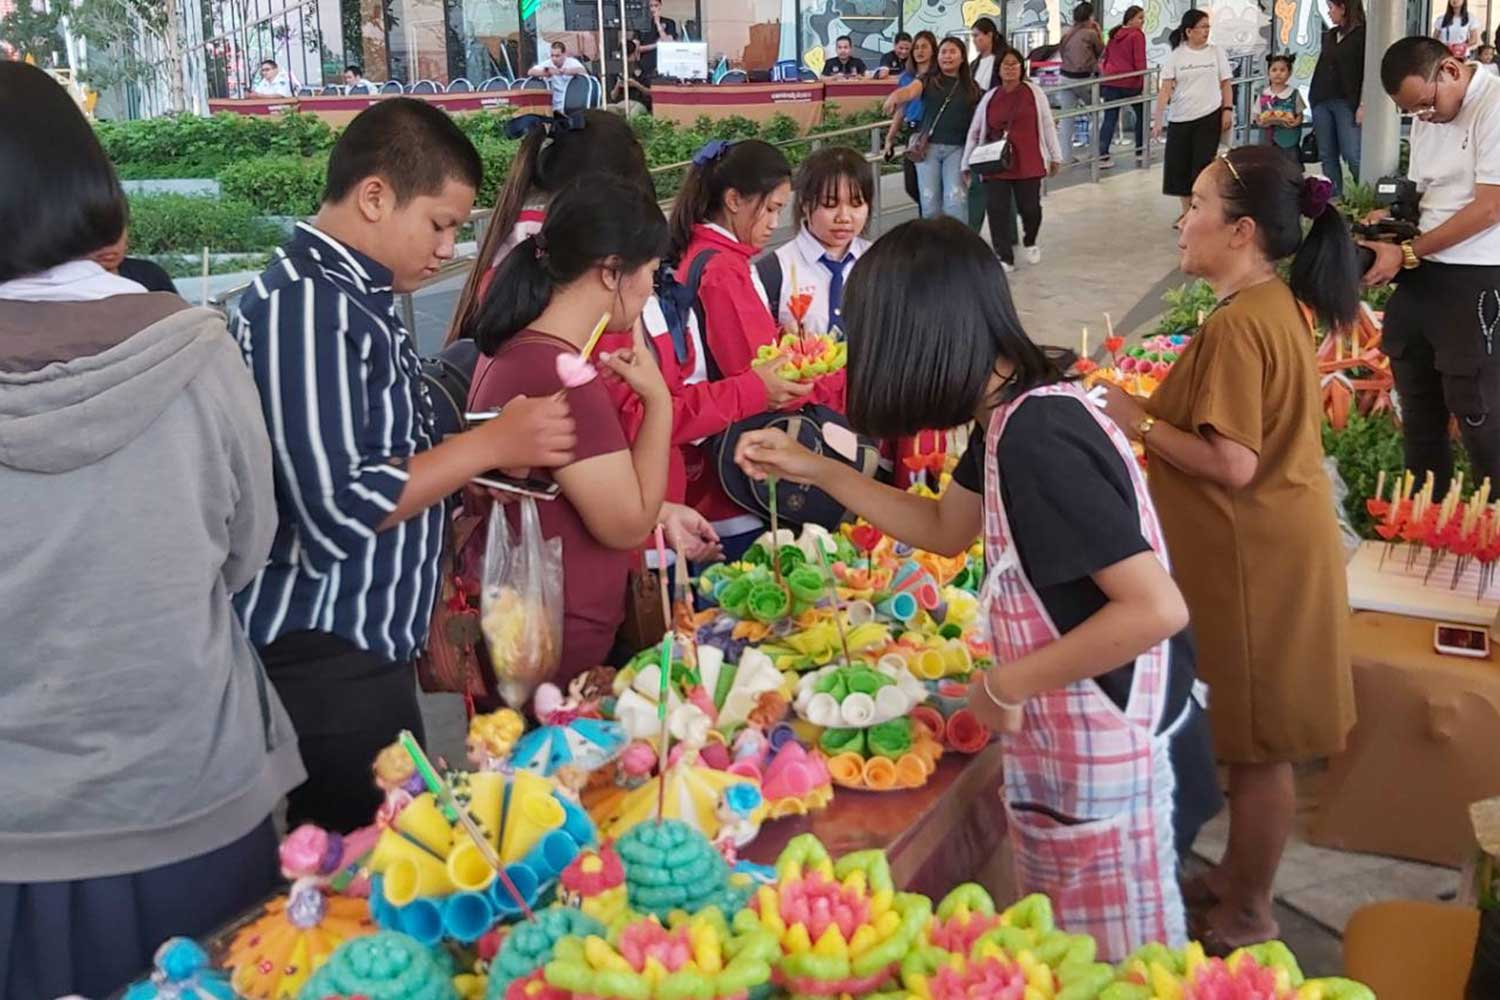 Krathong floats made by 15-year-old